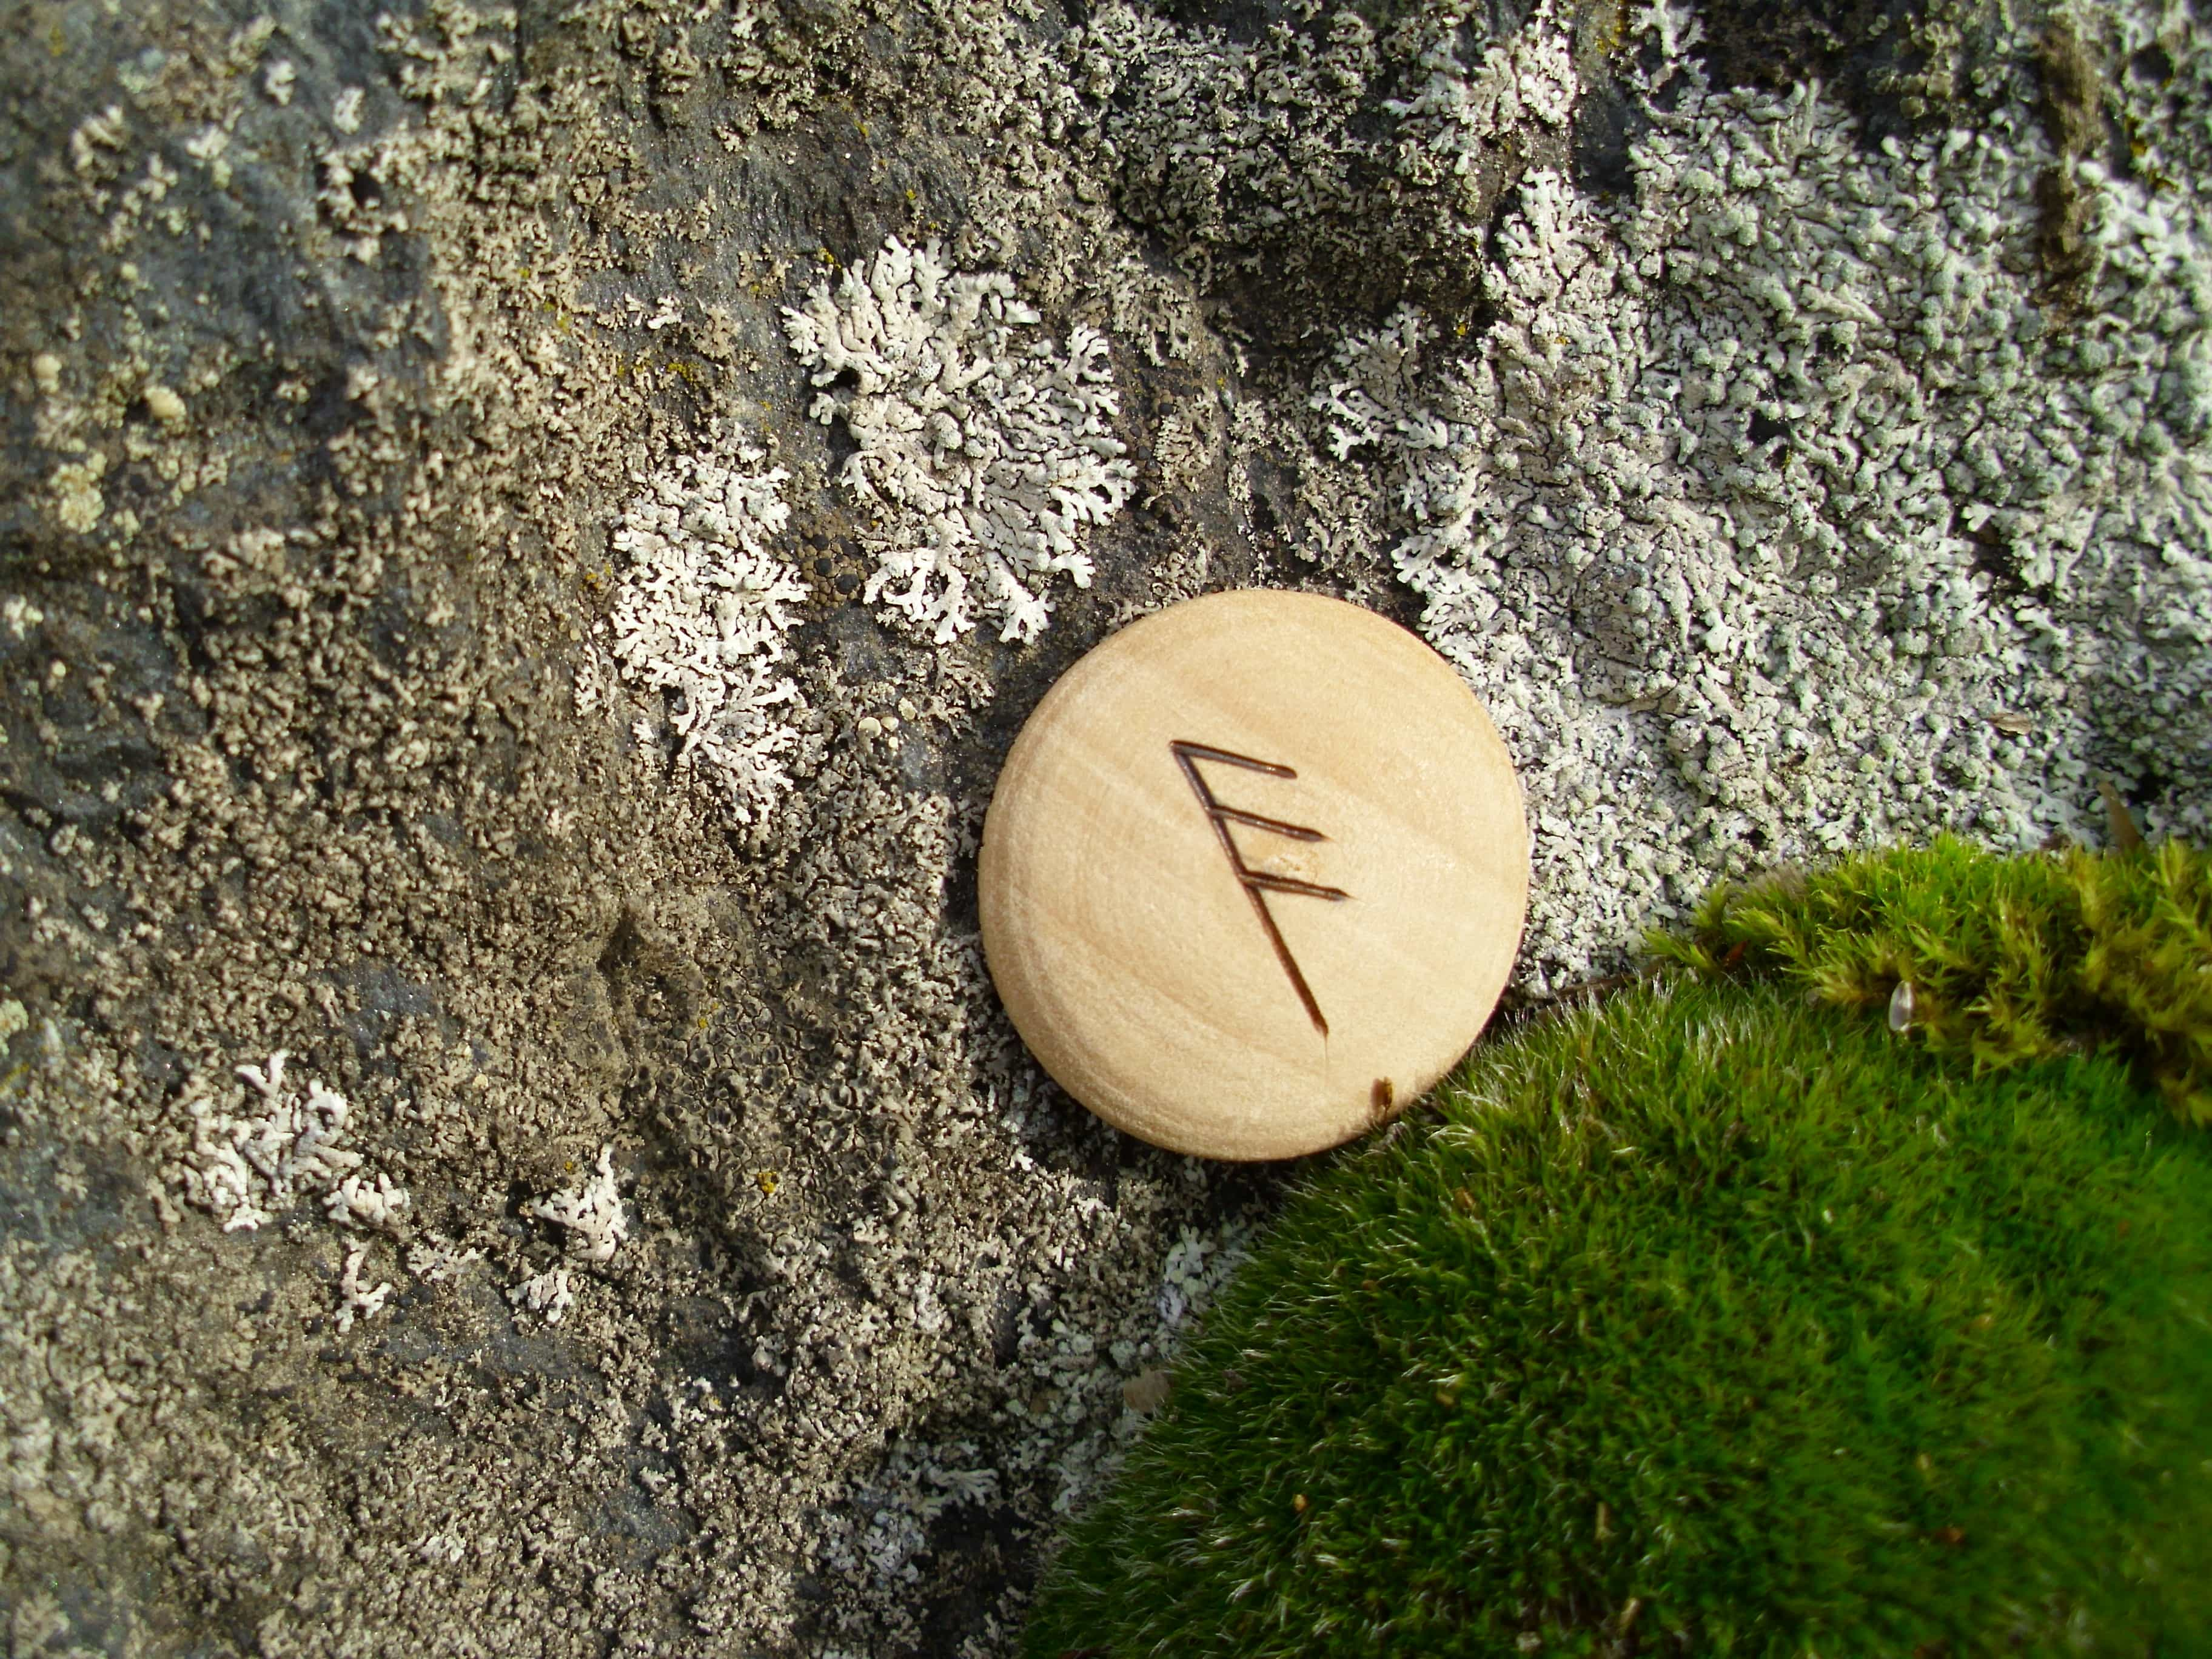 Pocket Rune for academic brilliance - Wooden Rune Amulet - Akademisk briljans